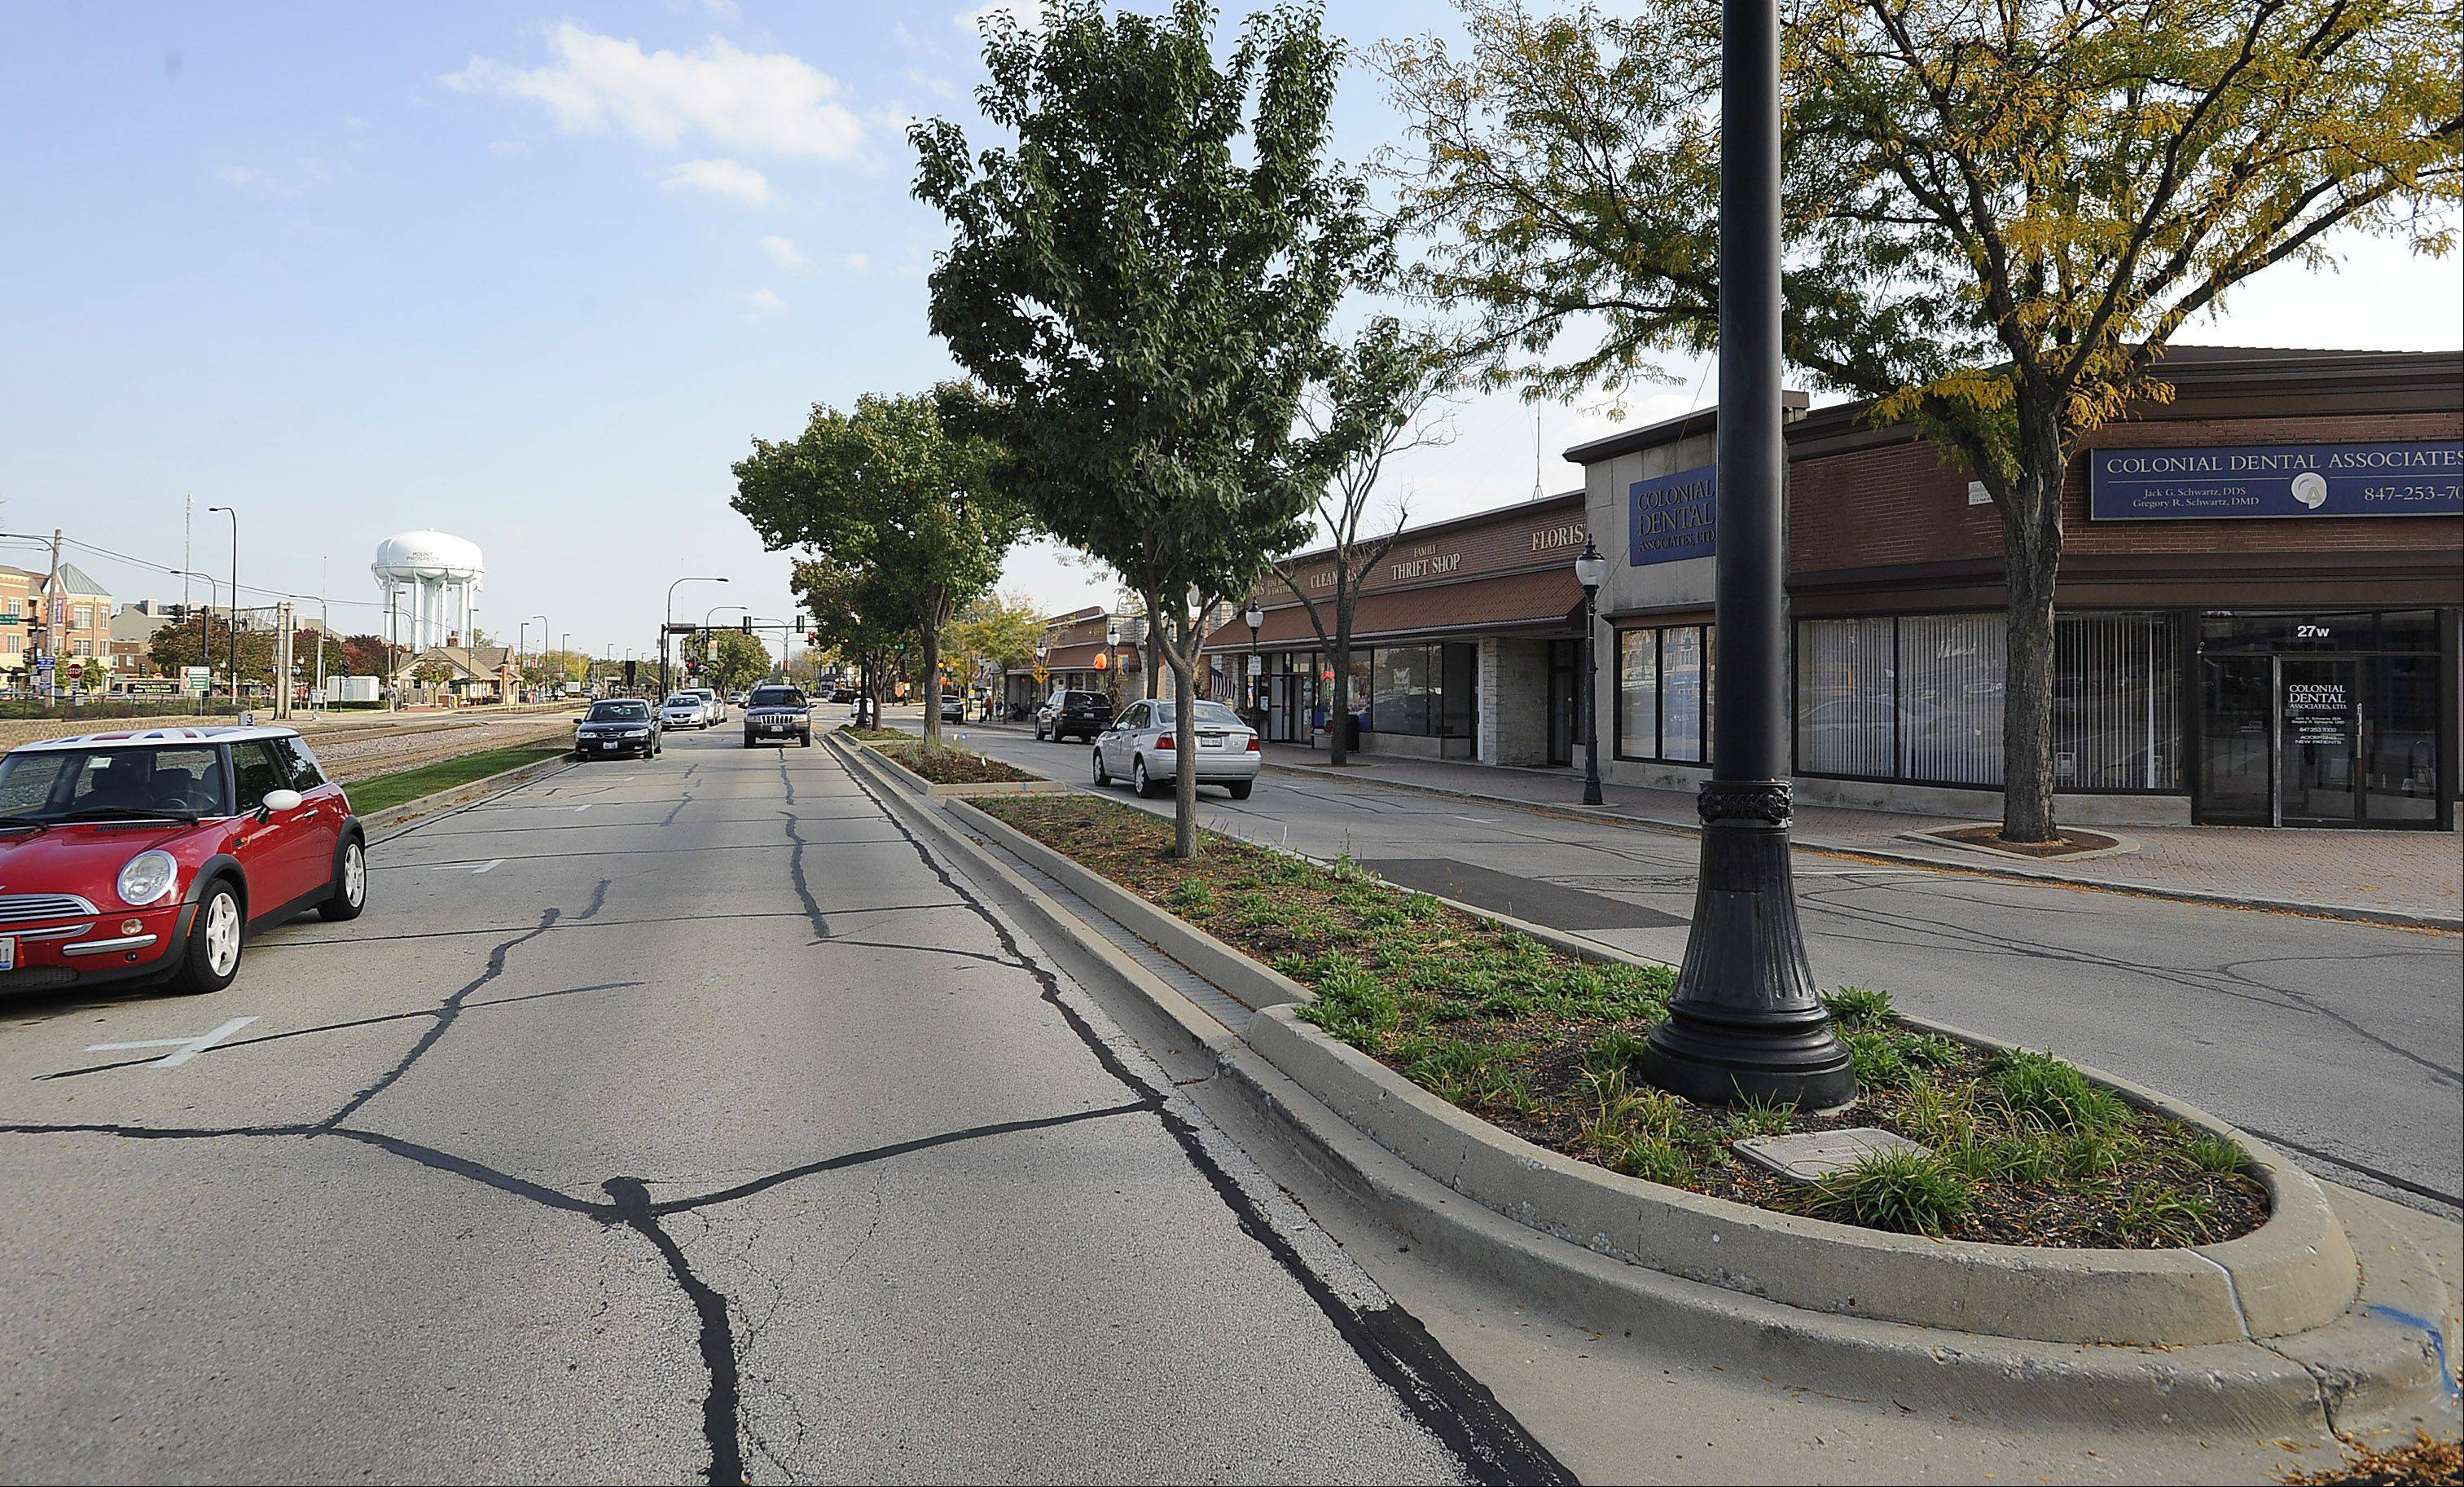 Prospect Avenue south of the tracks with its landscaped median and small shops in downtown Mount Prospect.